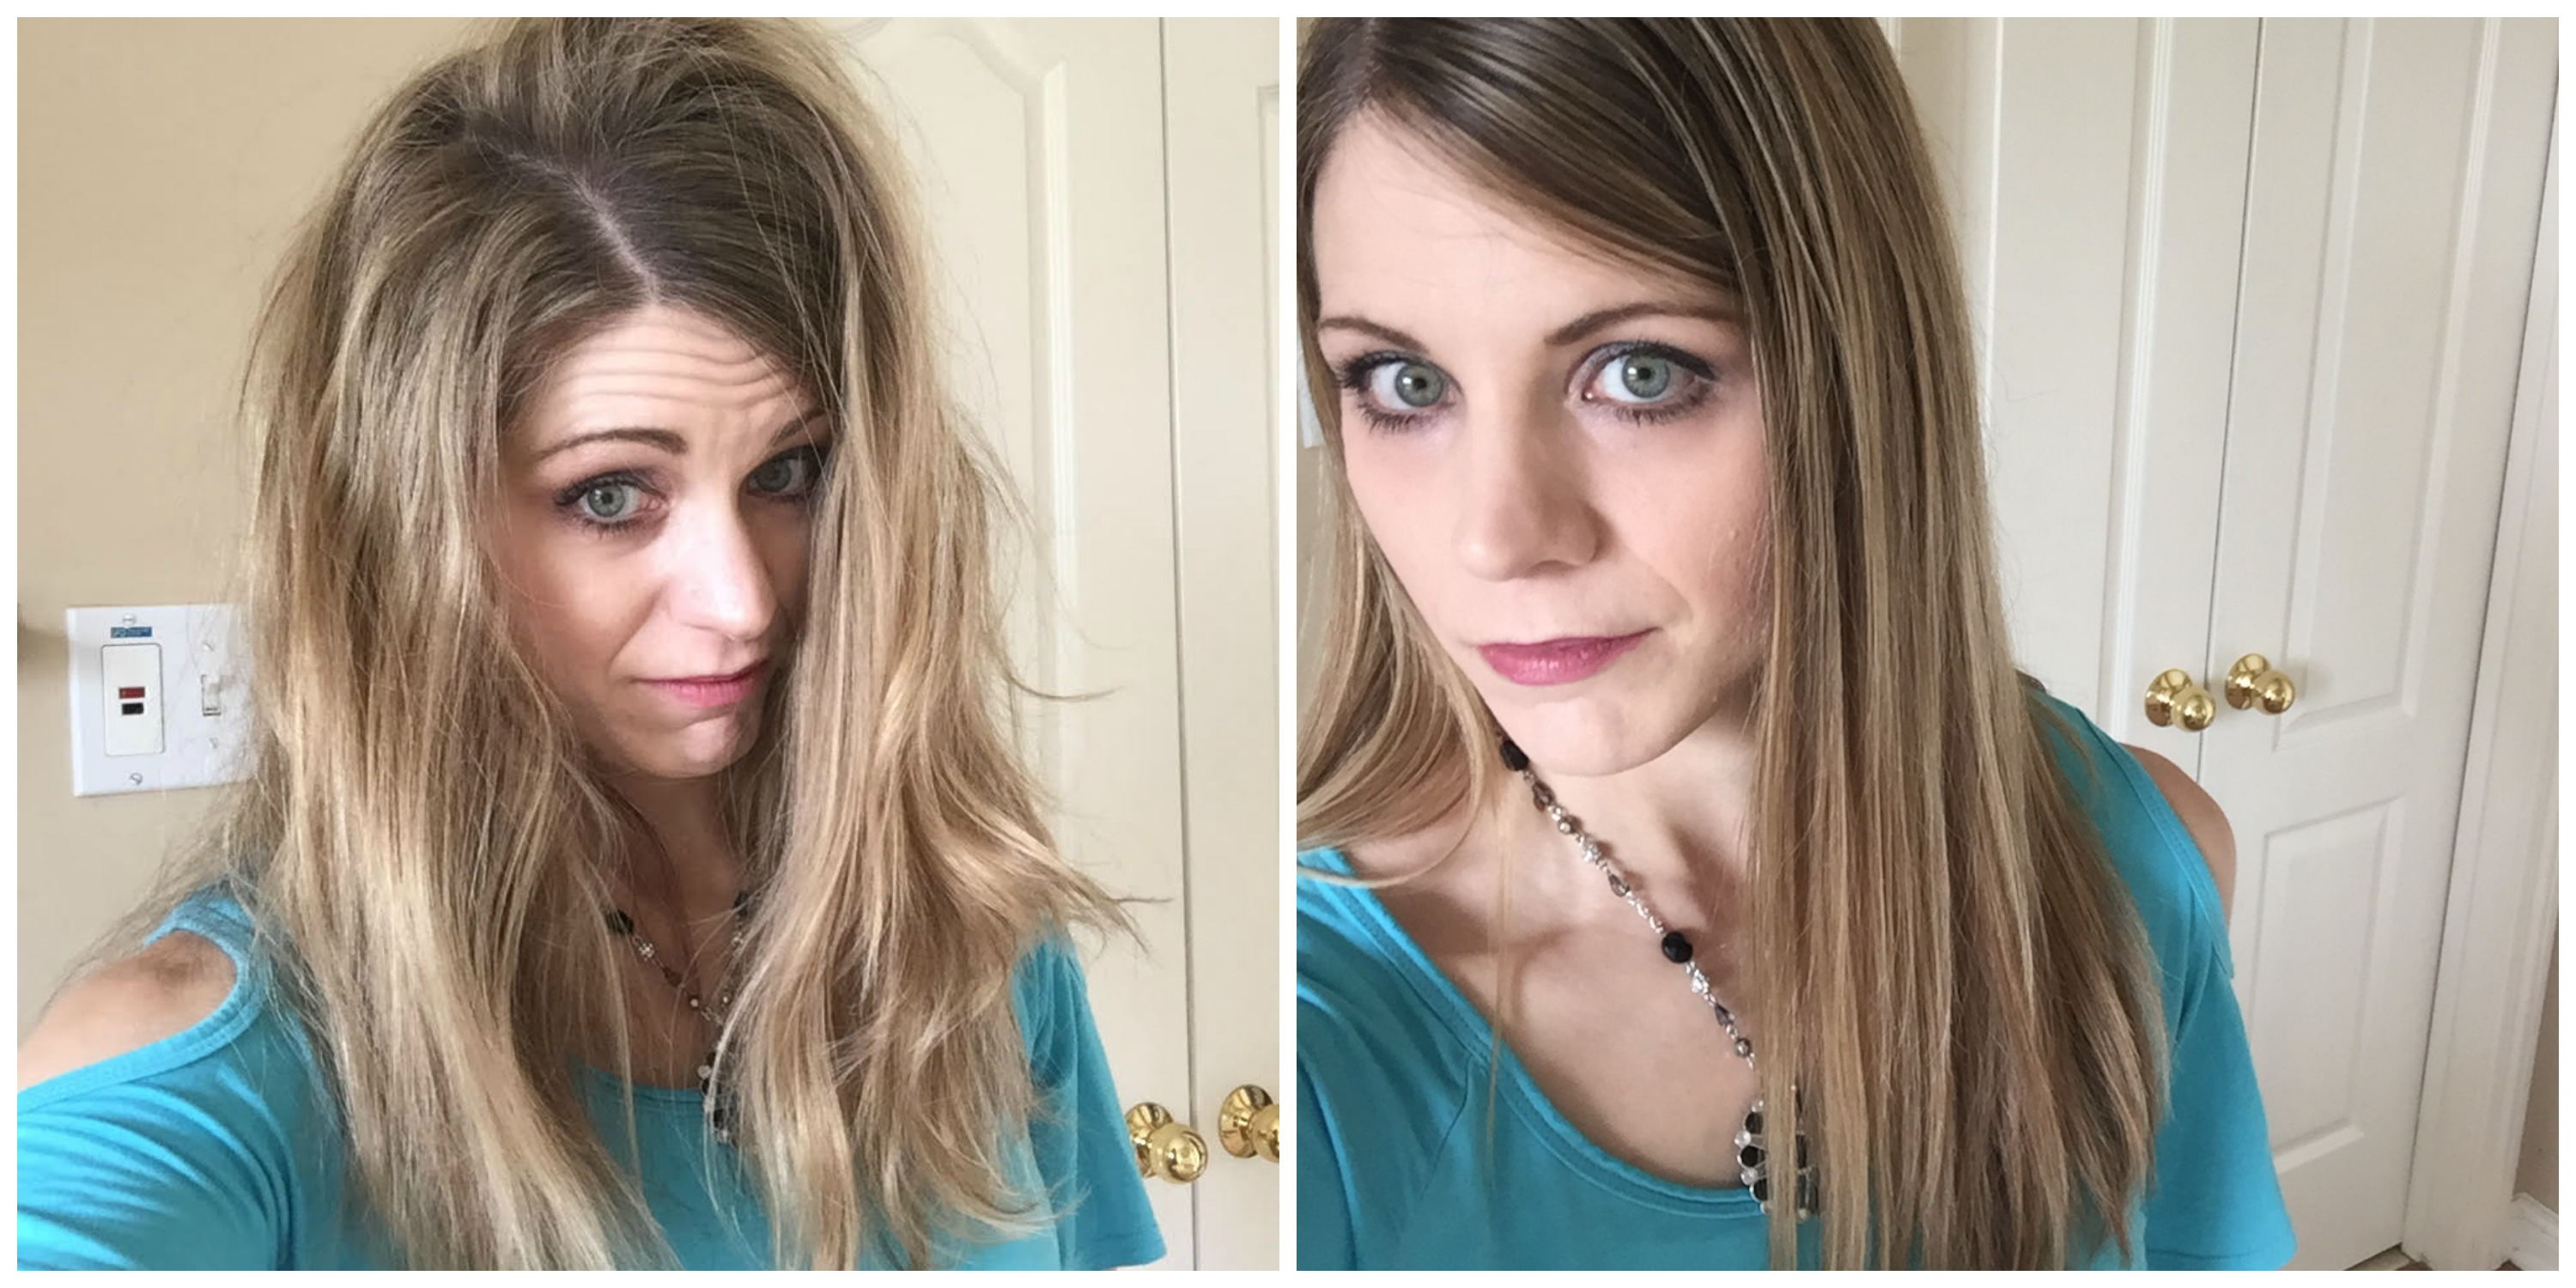 The Before and After Hair Photos You've Been Begging For